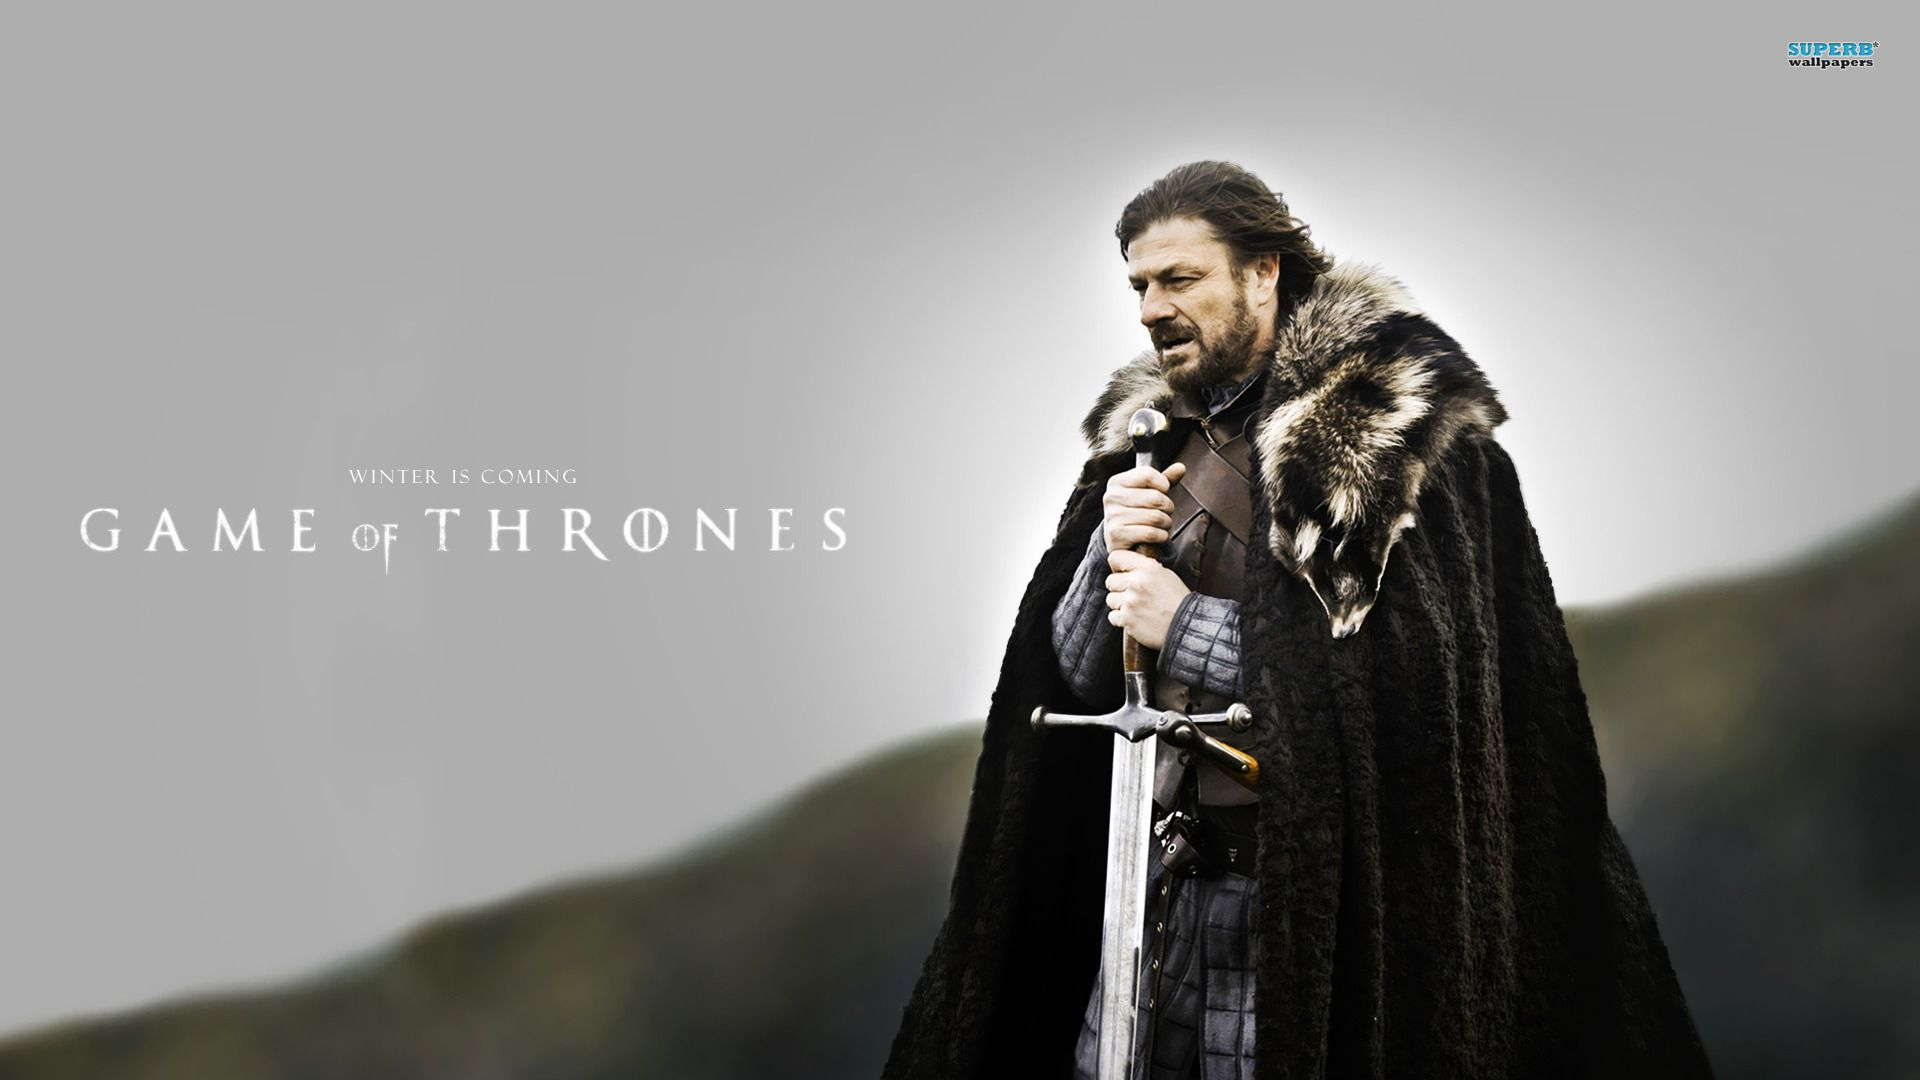 game of thrones wallpaper https://www.facebook.com/GOTFanClub